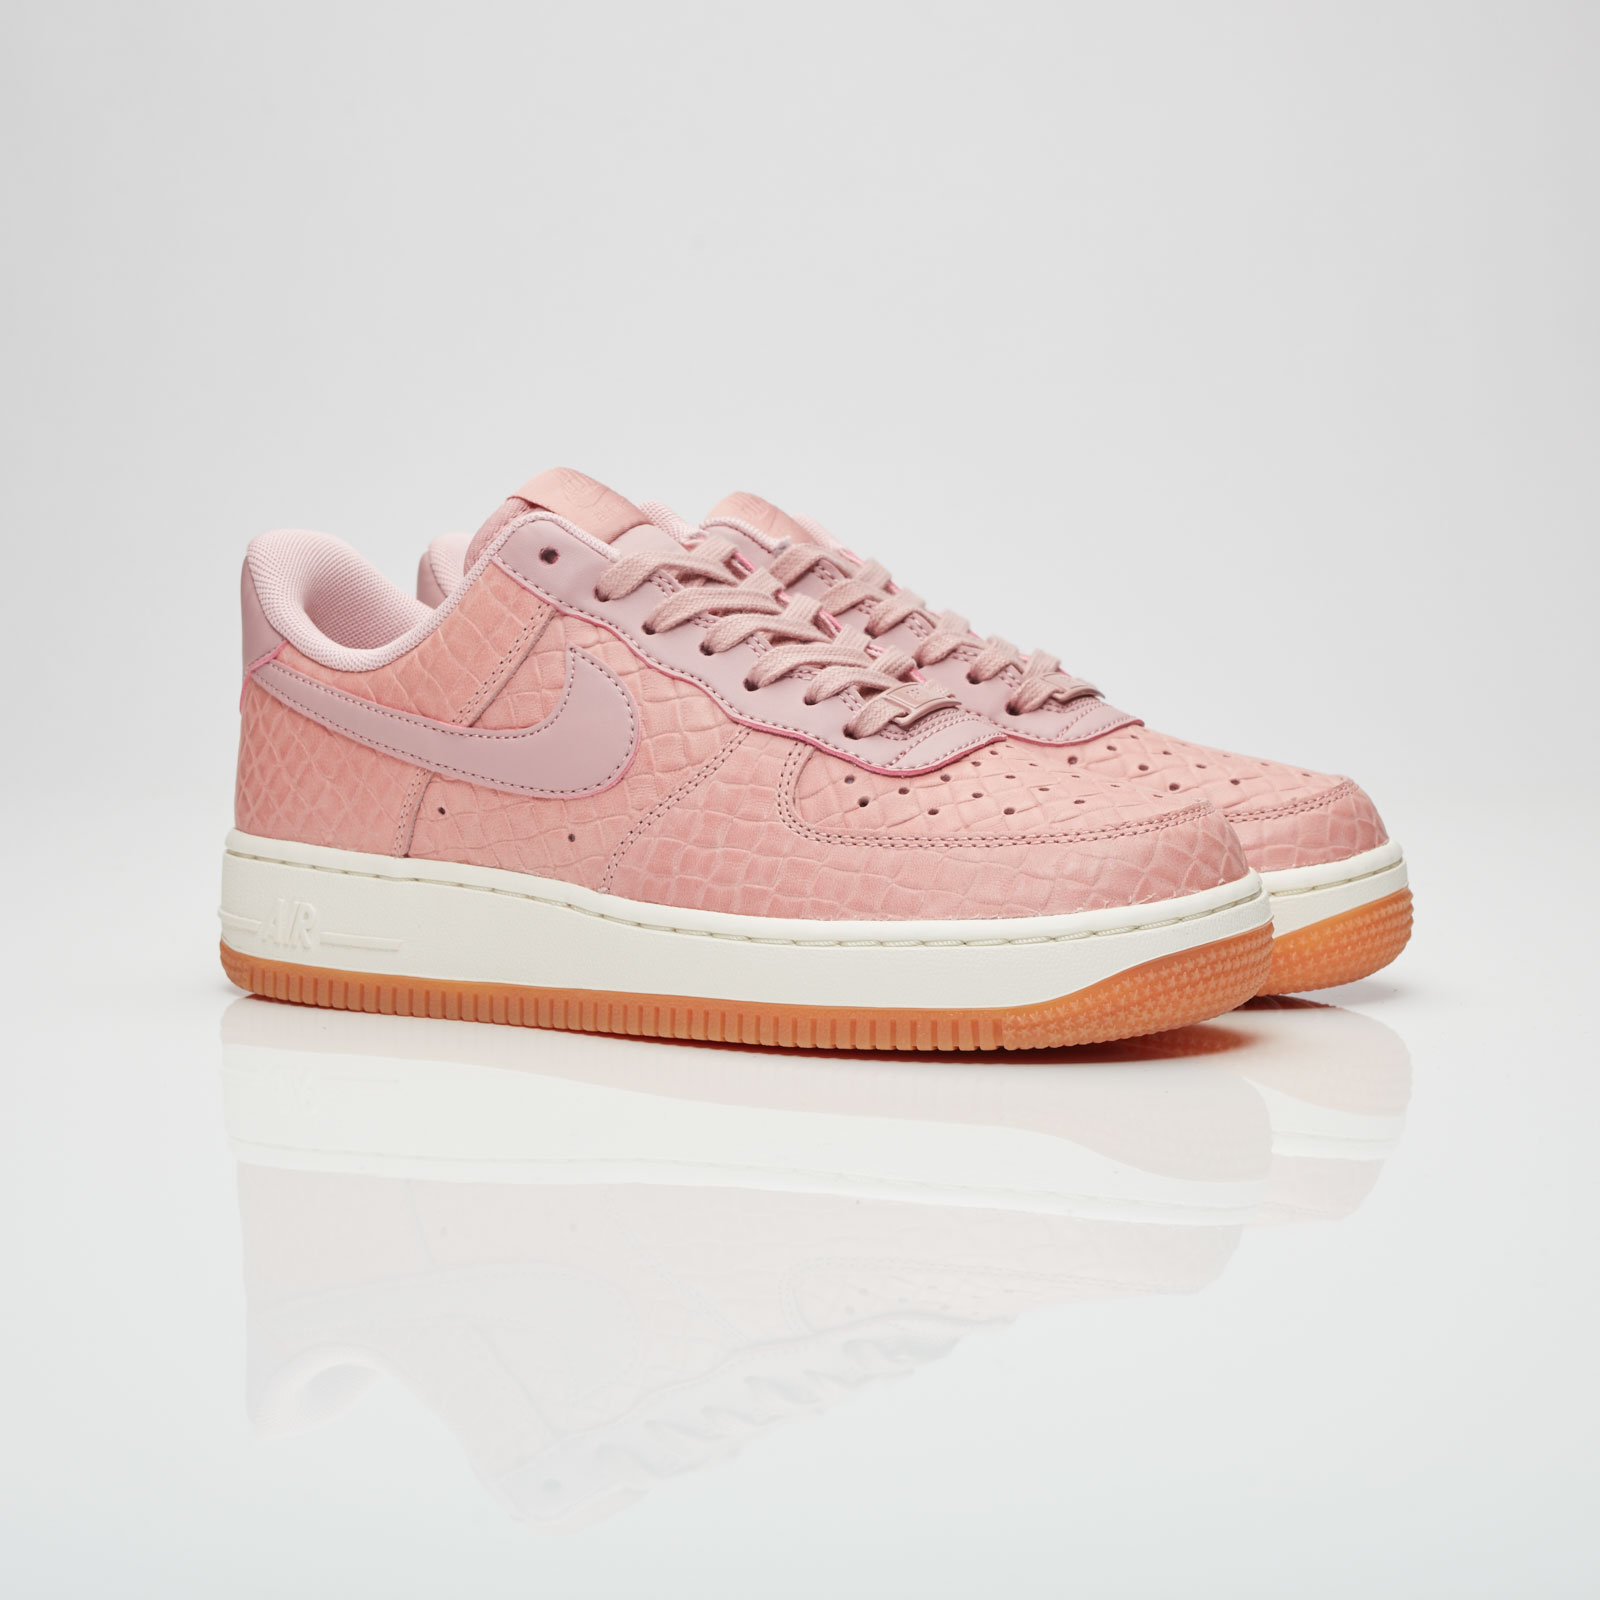 buy online 6bb7a 09274 nike womens air force 1 pink glaze